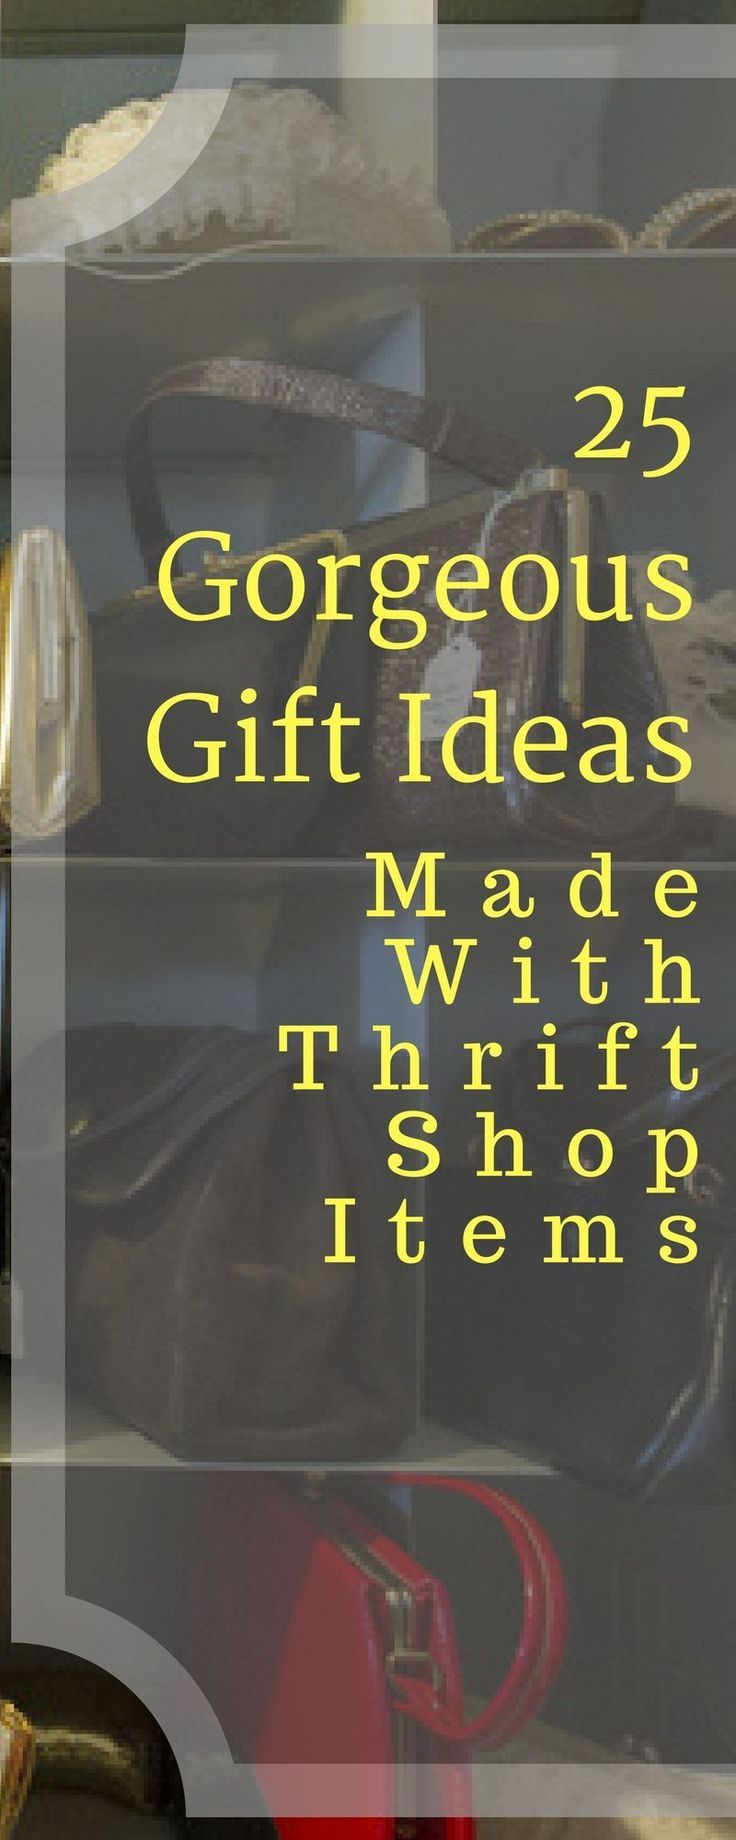 25 Gorgeous Gift Ideas Made With Thrift Shop Items #thriftstorefinds